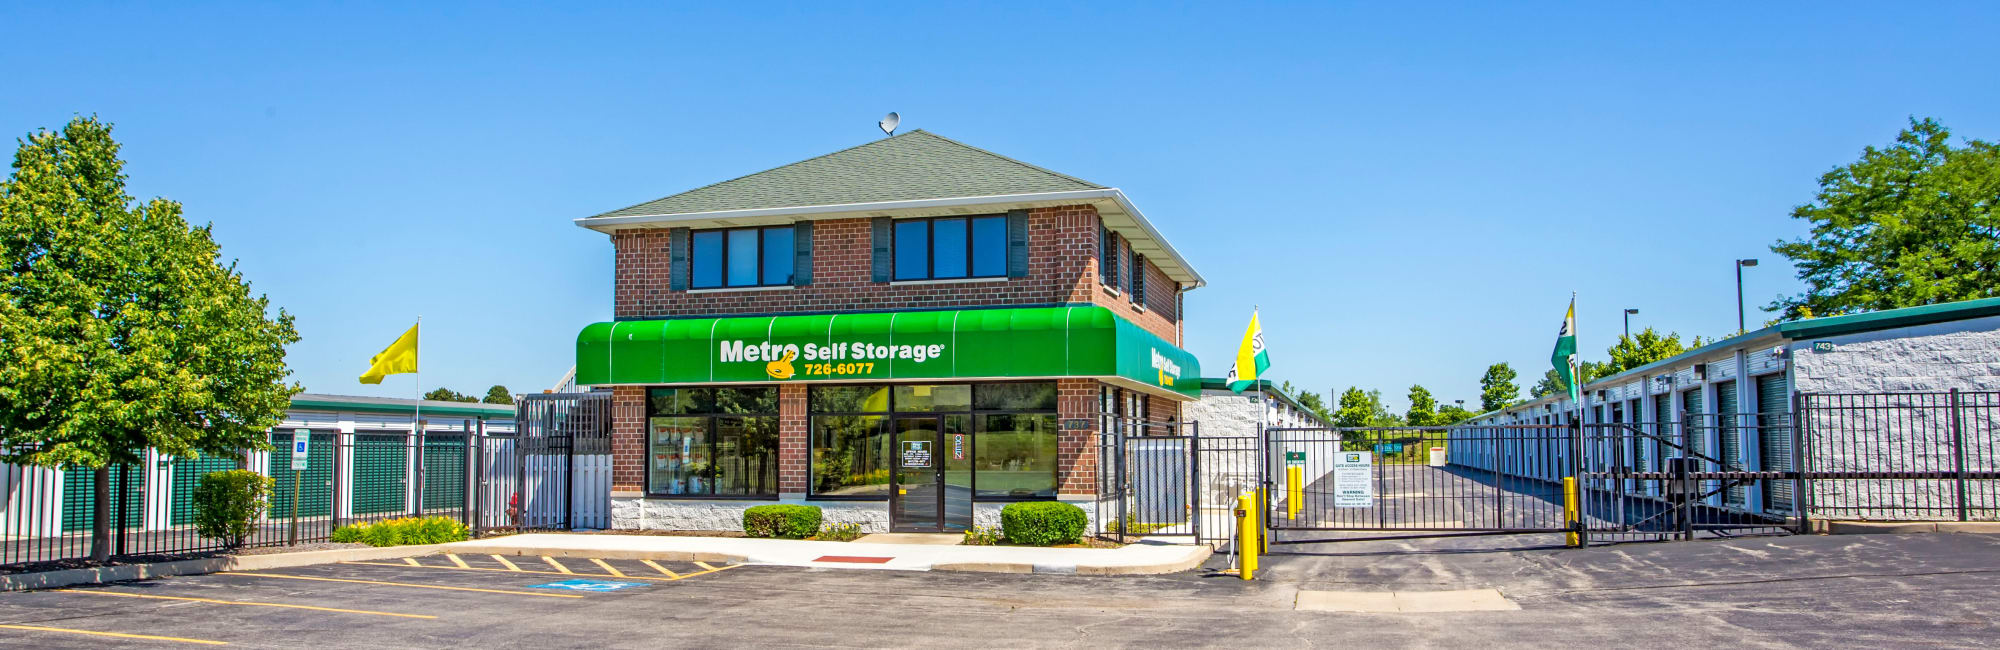 Metro Self Storage In Lake Zurich, IL